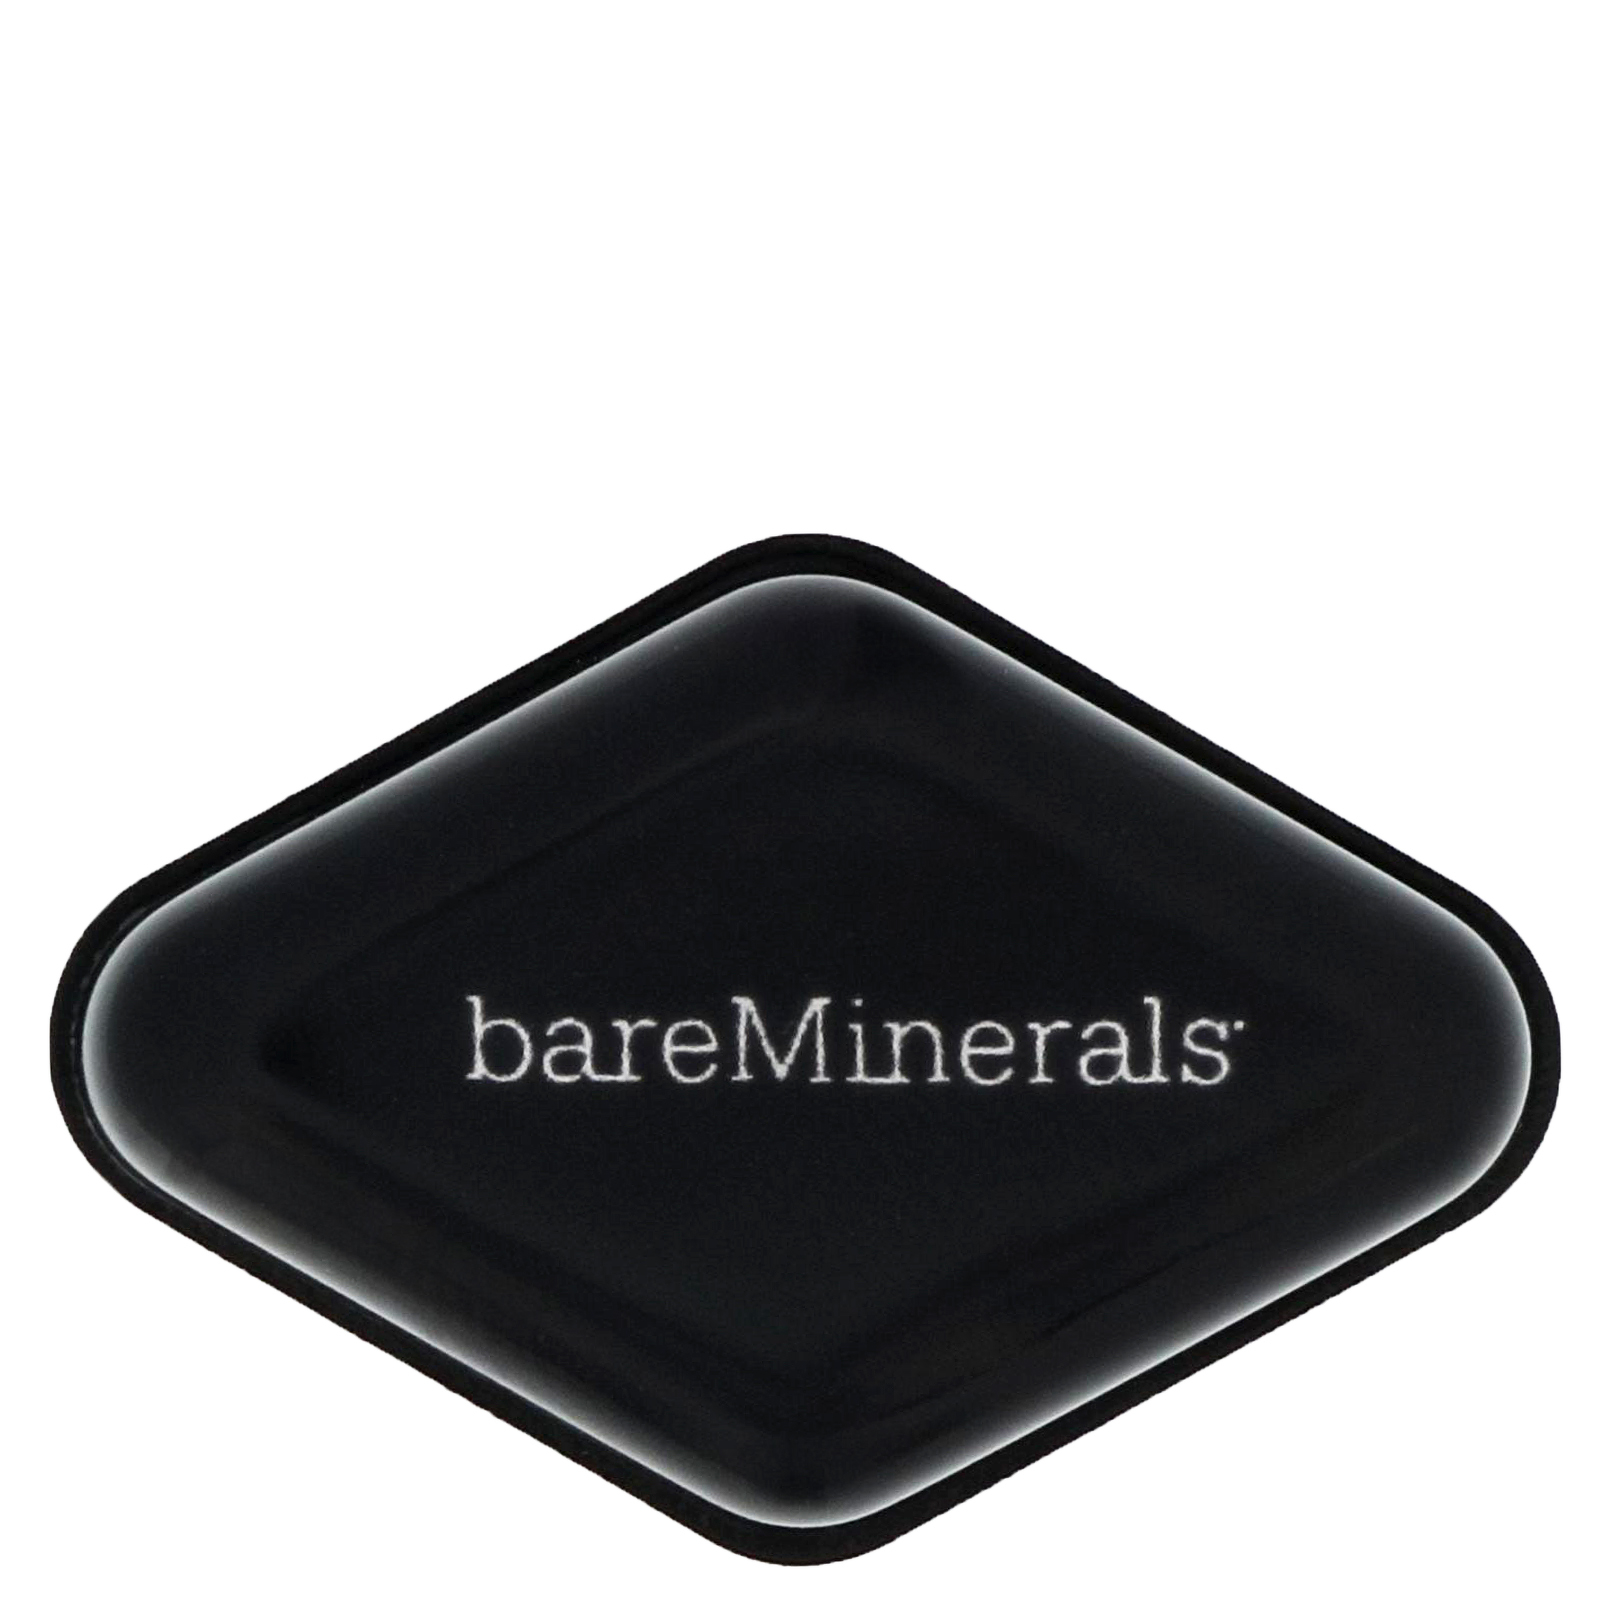 bareMinerals Accessories Dual-Sided Silicone Blender